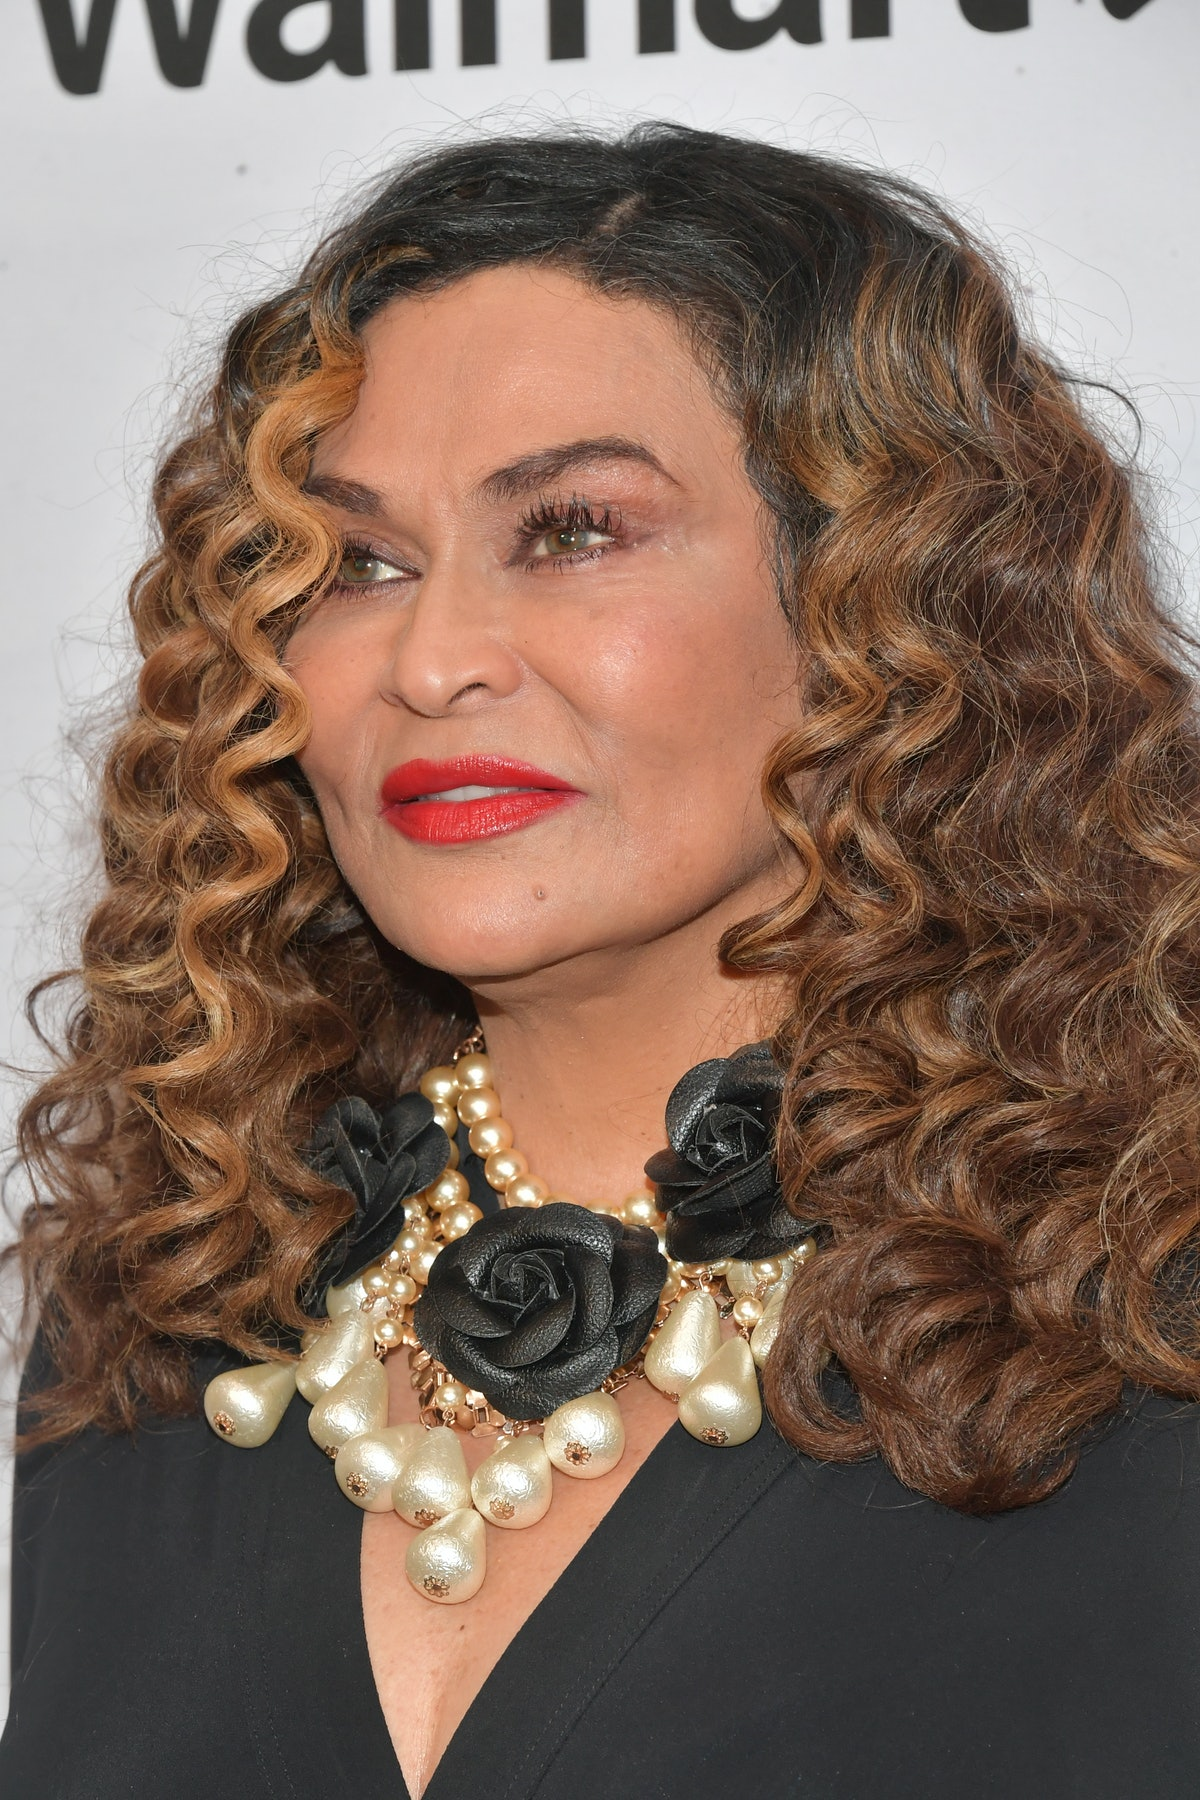 Tina Knowles Lawson's Sweet Comment About Meghan Markle Shows Her Appreciation Of The Duchess